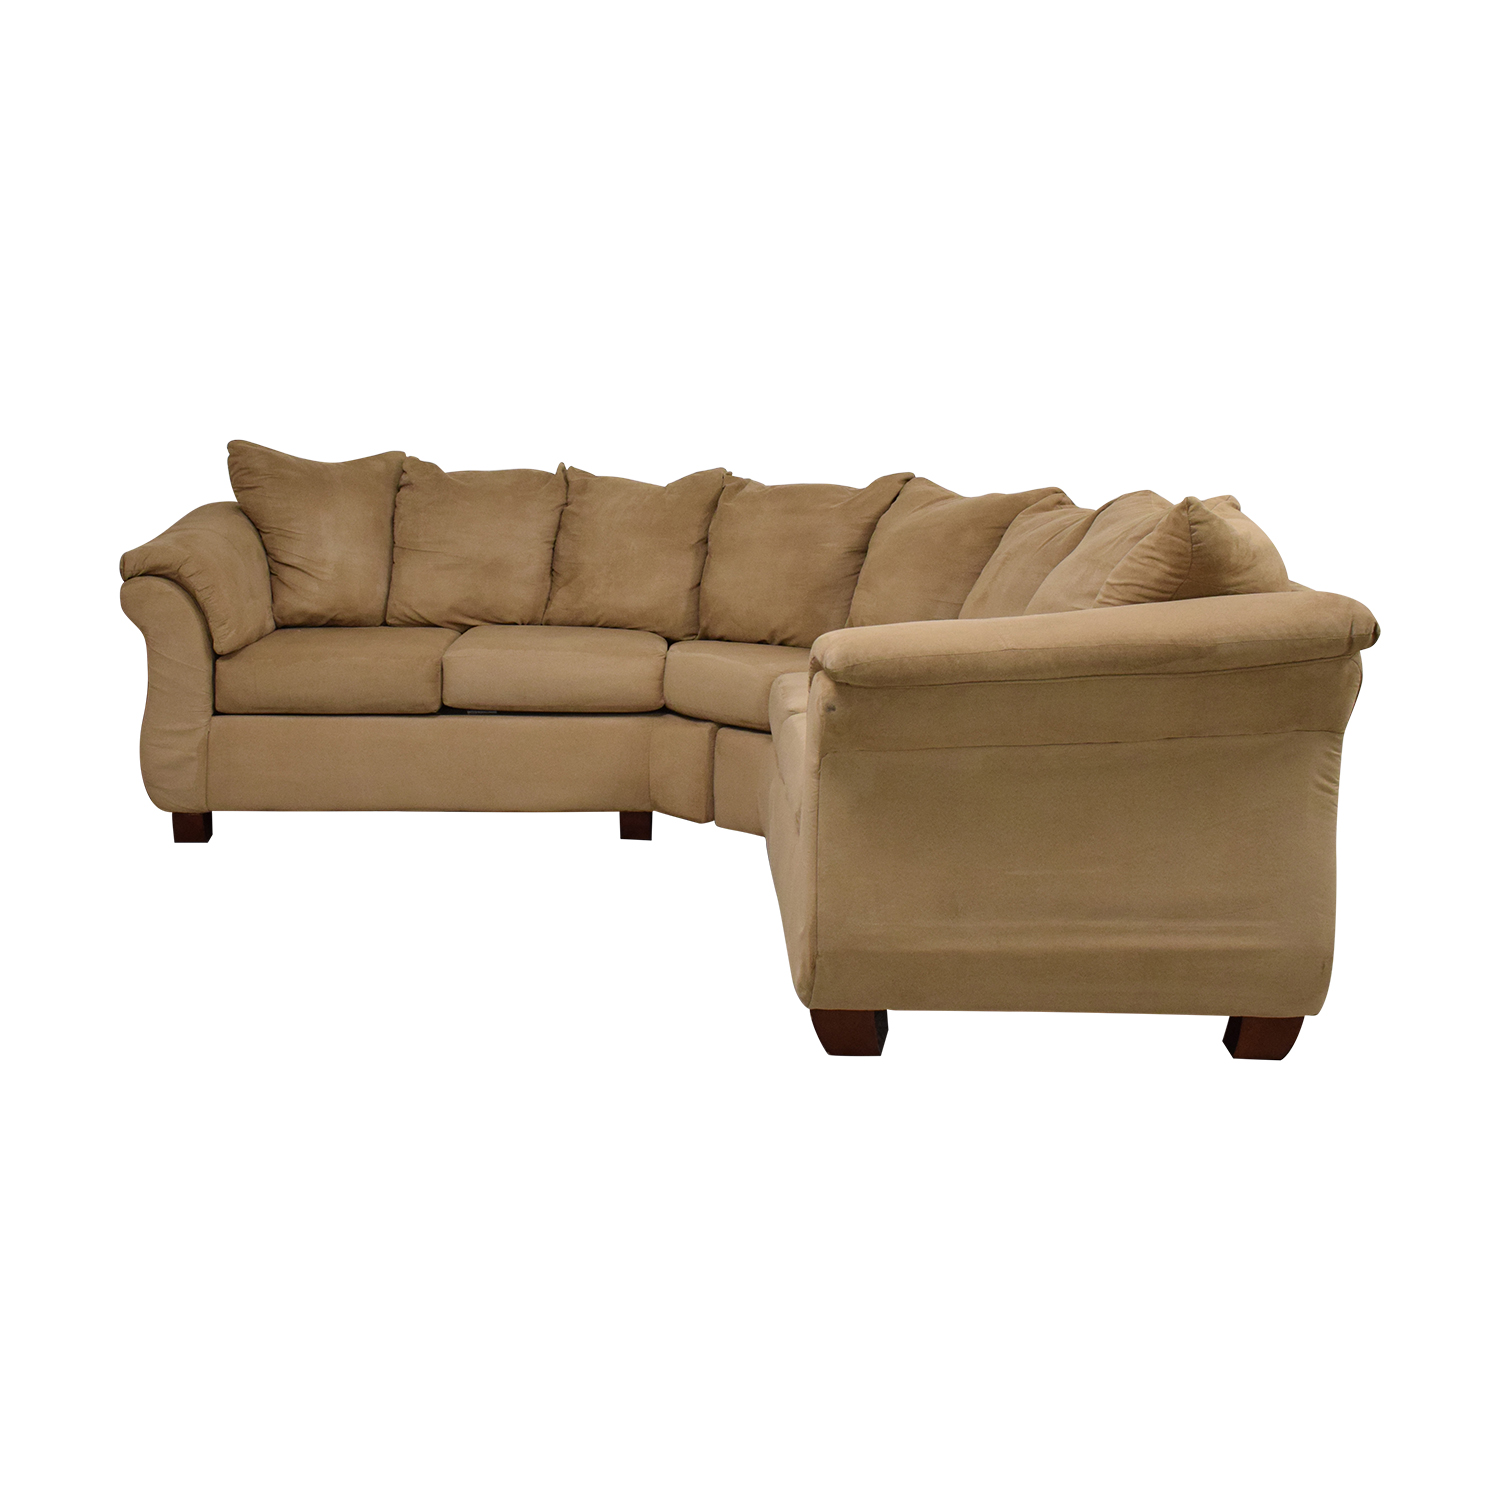 Washington Furniture Washington Furniture Five Cushion Sectional Sofa ma